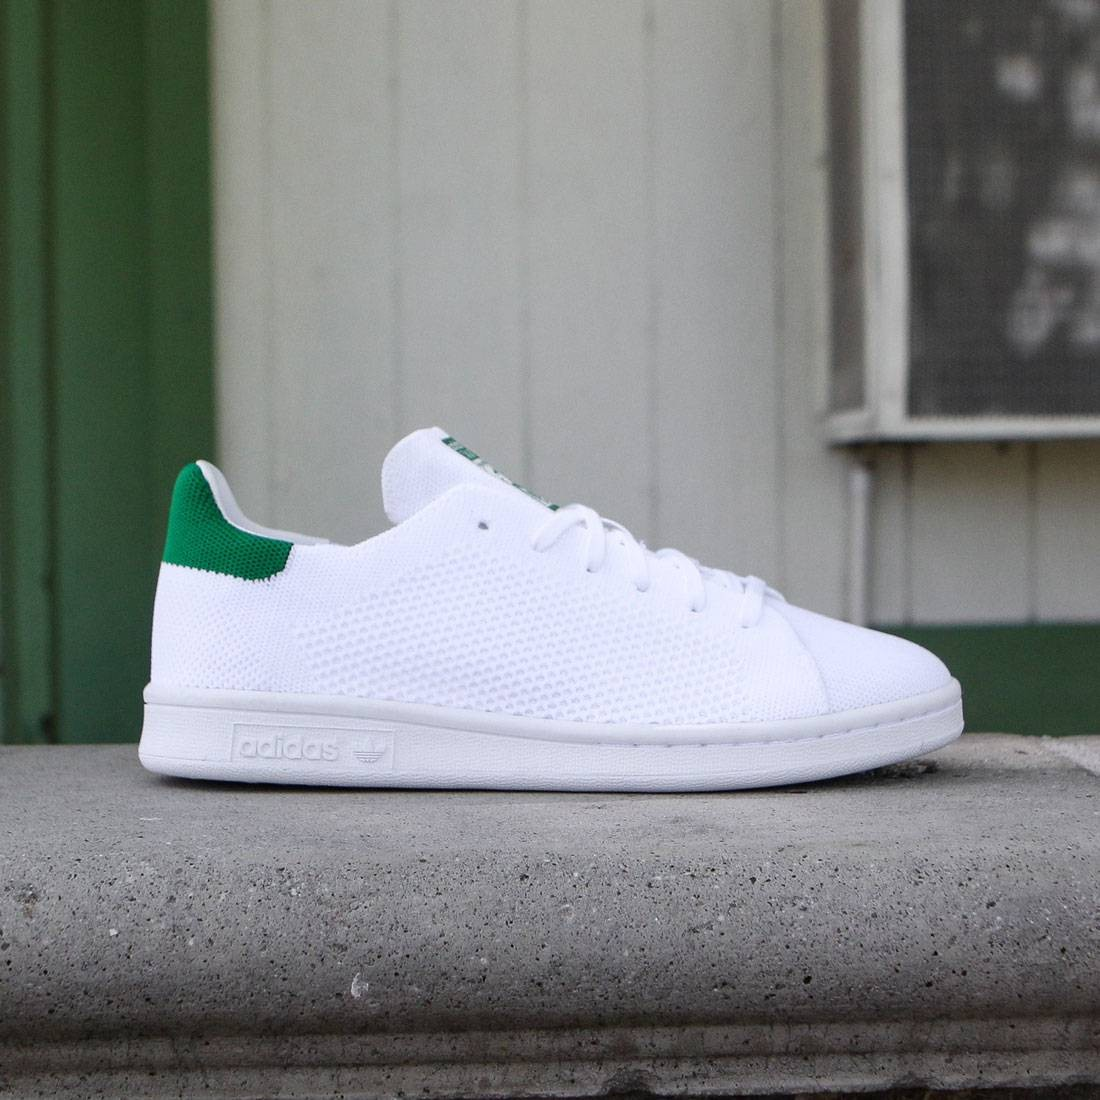 G8KWEJAZKO Shoes For adidas Stan Smith Primeknit Boost White